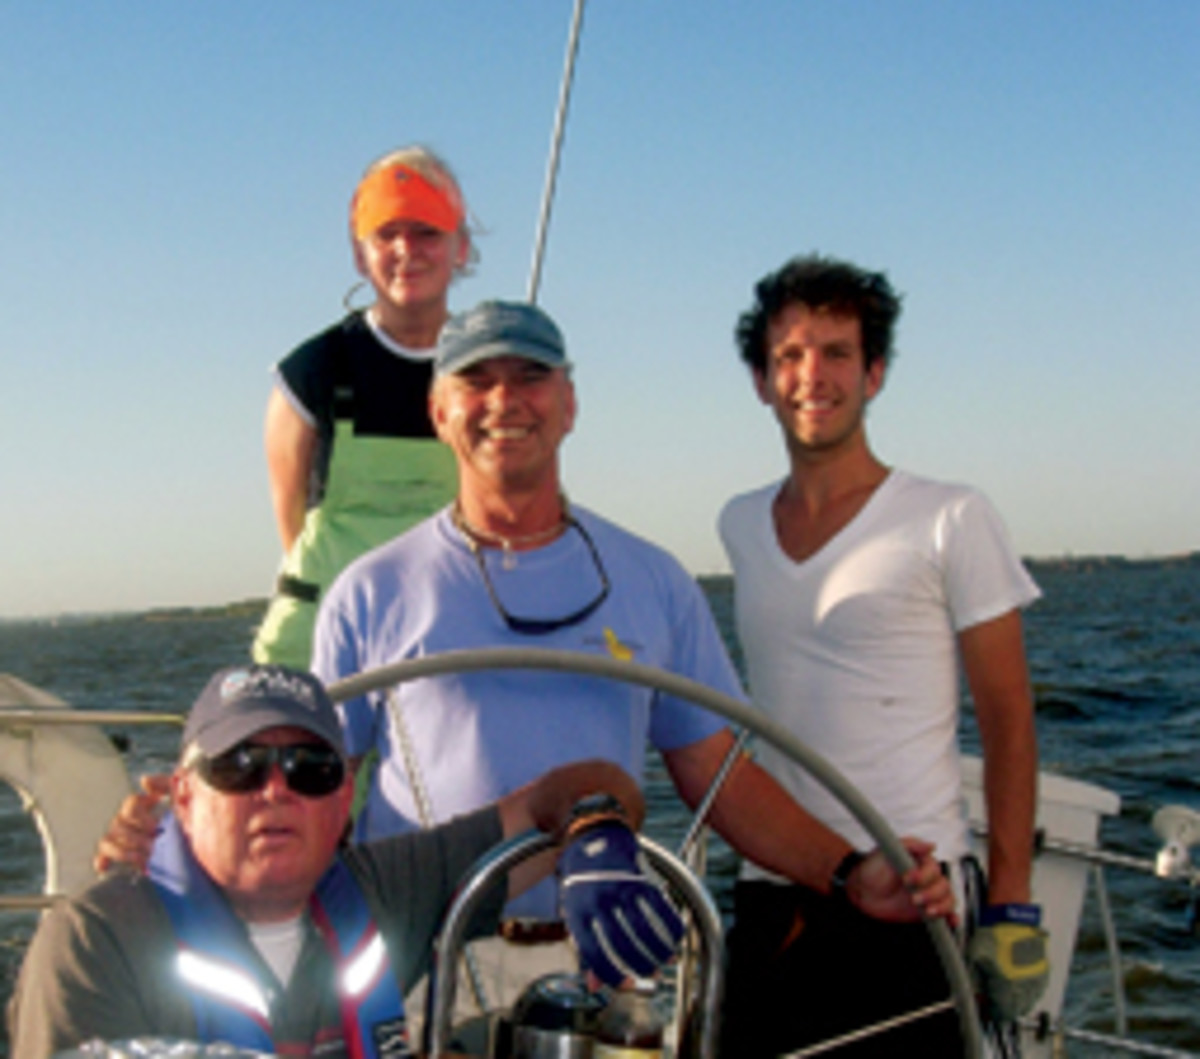 Skipper Larry Vazzano, at the helm, and crew were returning from a day of racing when they spotted fellow mariners in distress.